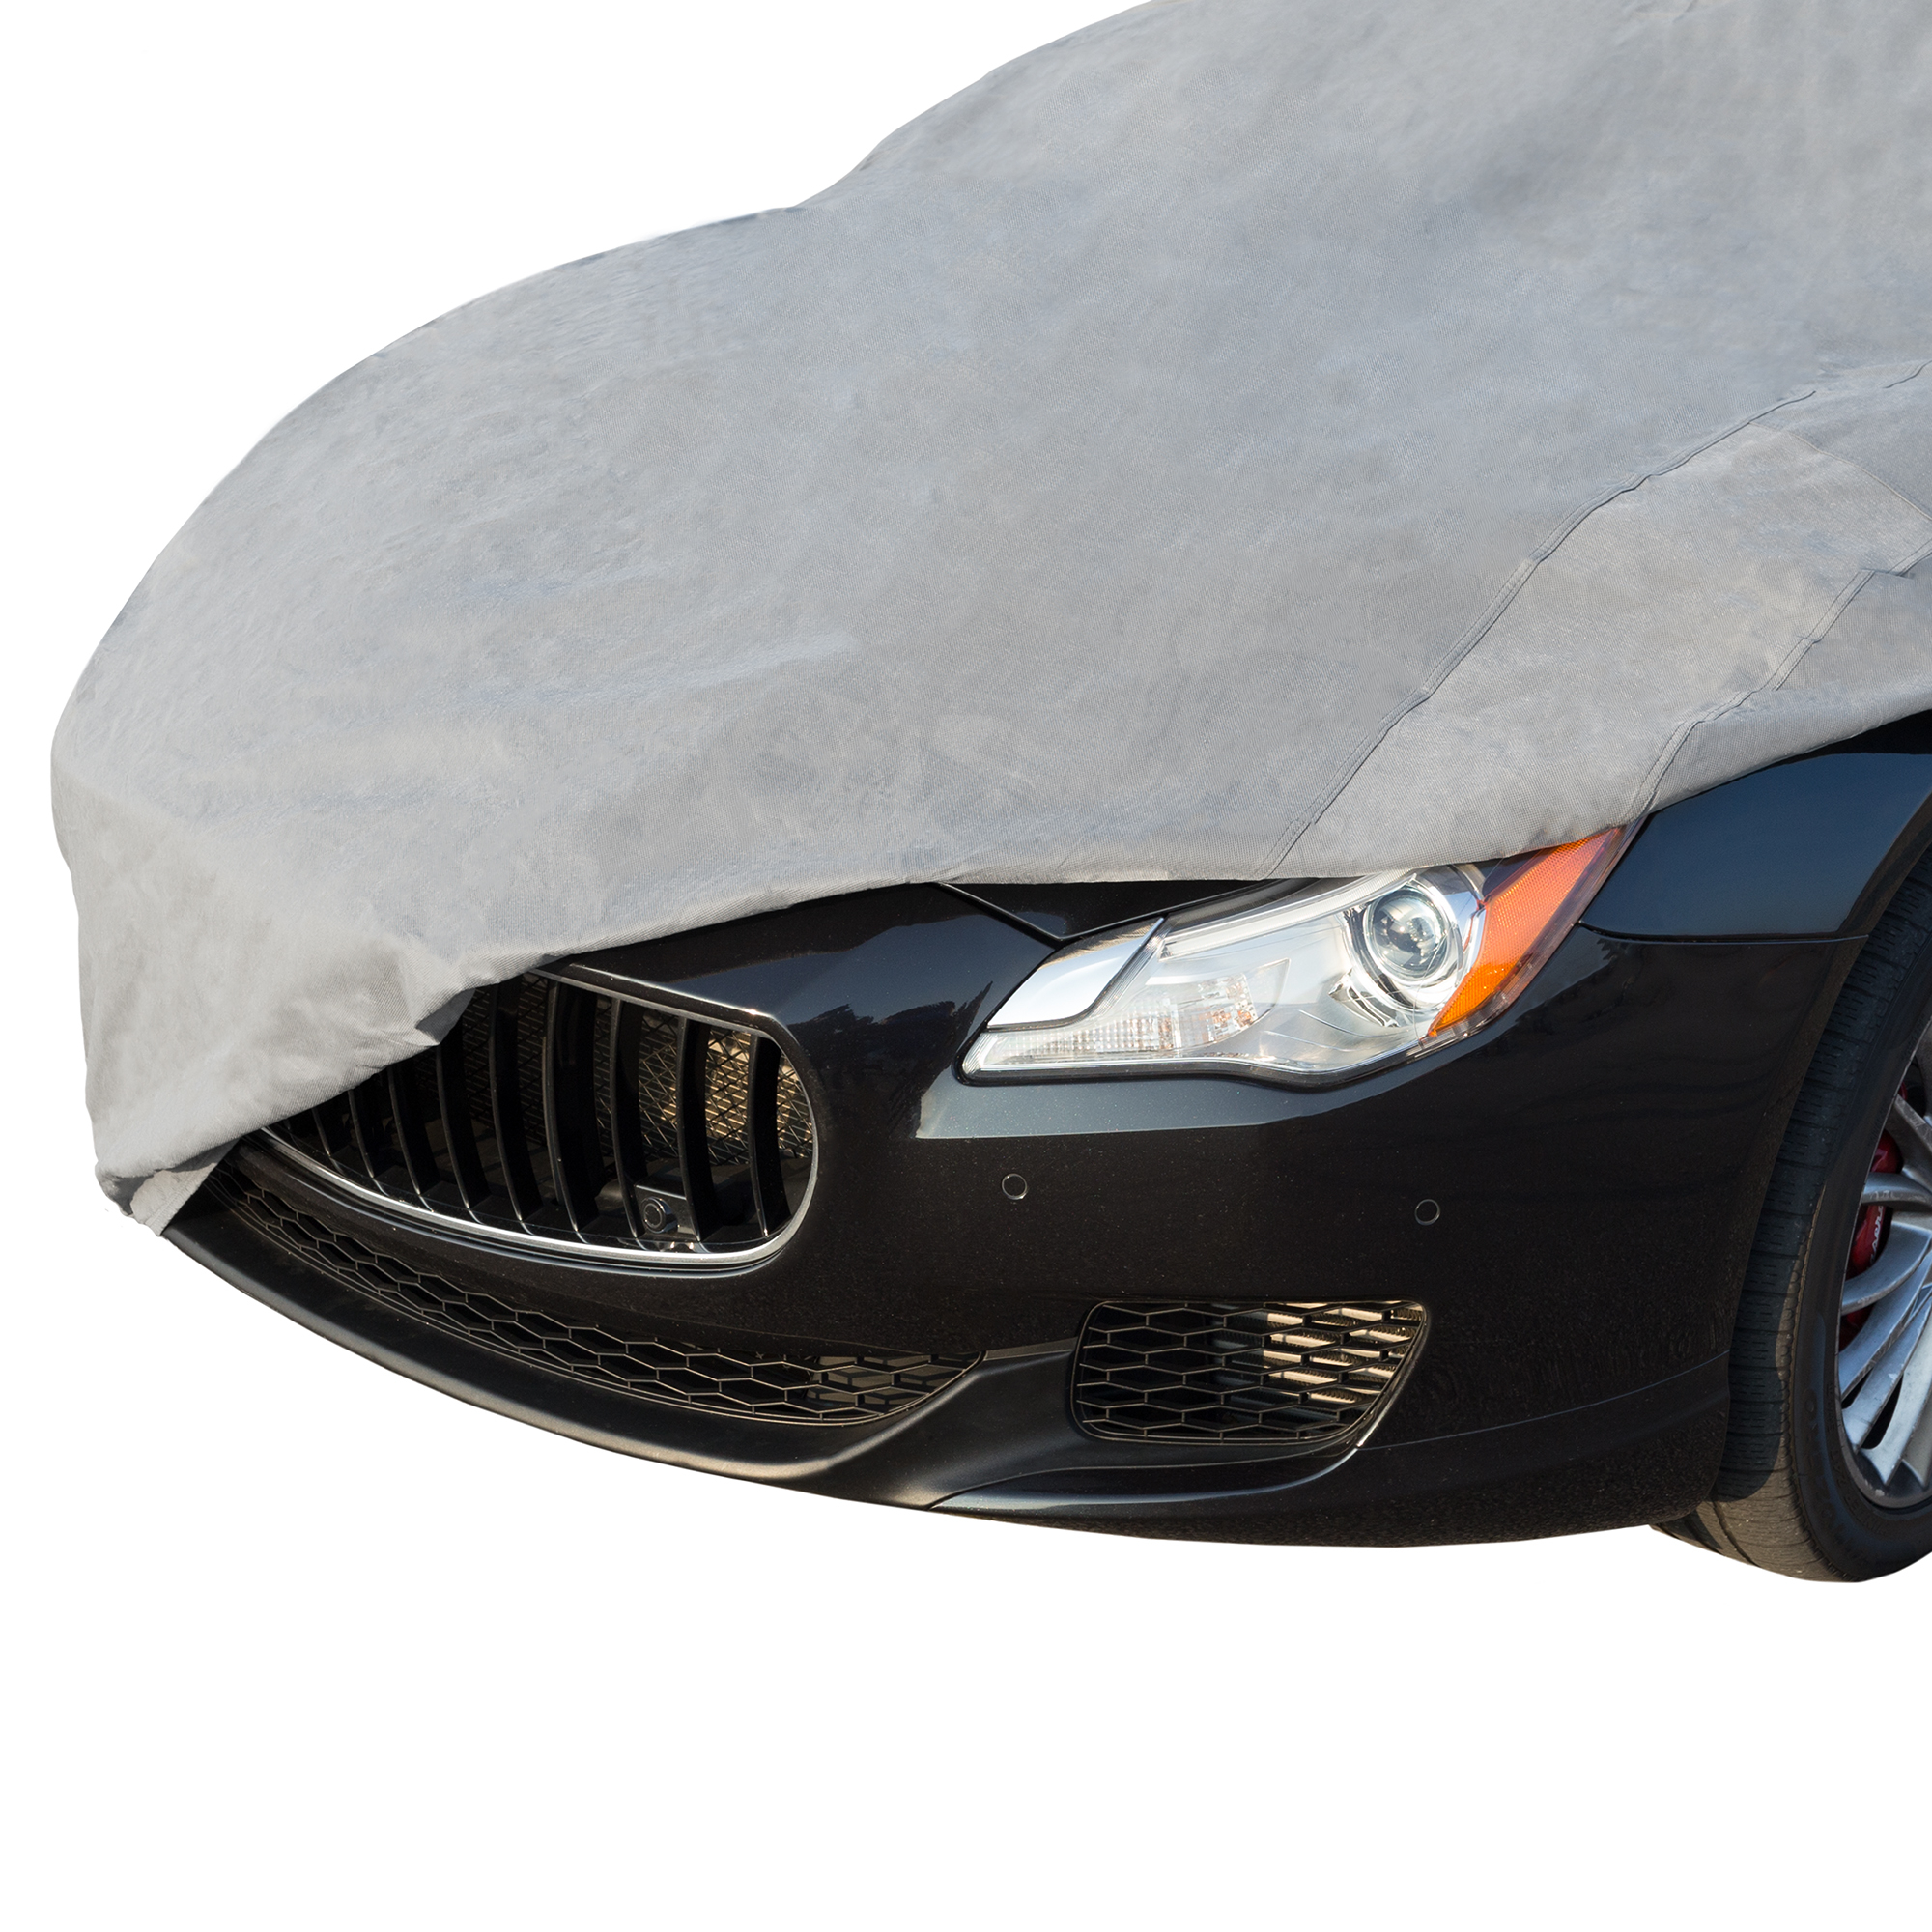 Universal Vehicle Car Cover Elastic Hems Grommets Fits Cars up to 15.8 Ft Water Resistant